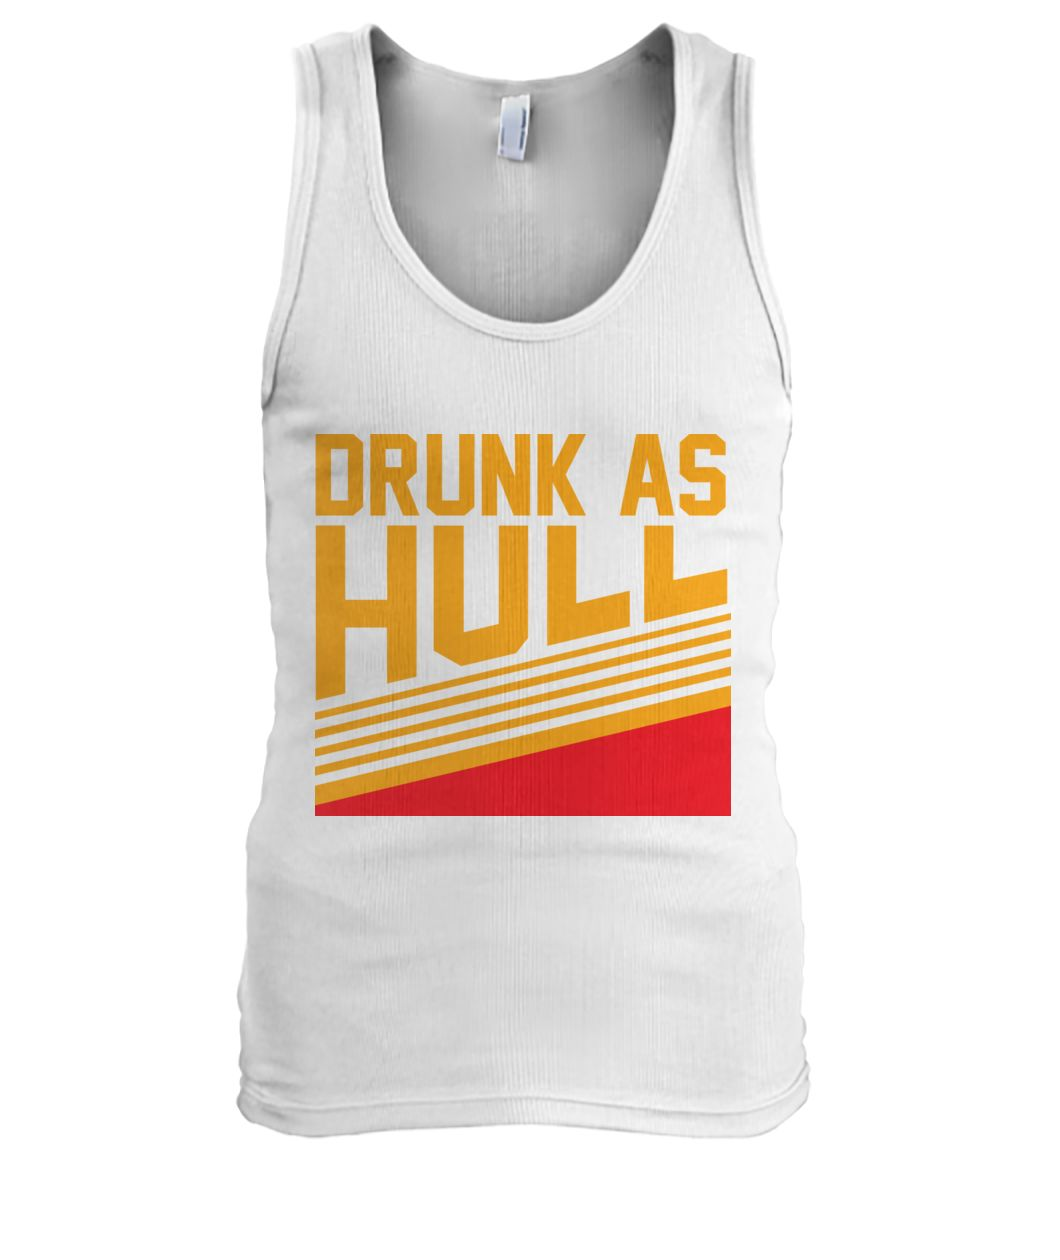 Drunk as hull St louis hockey men's tank top